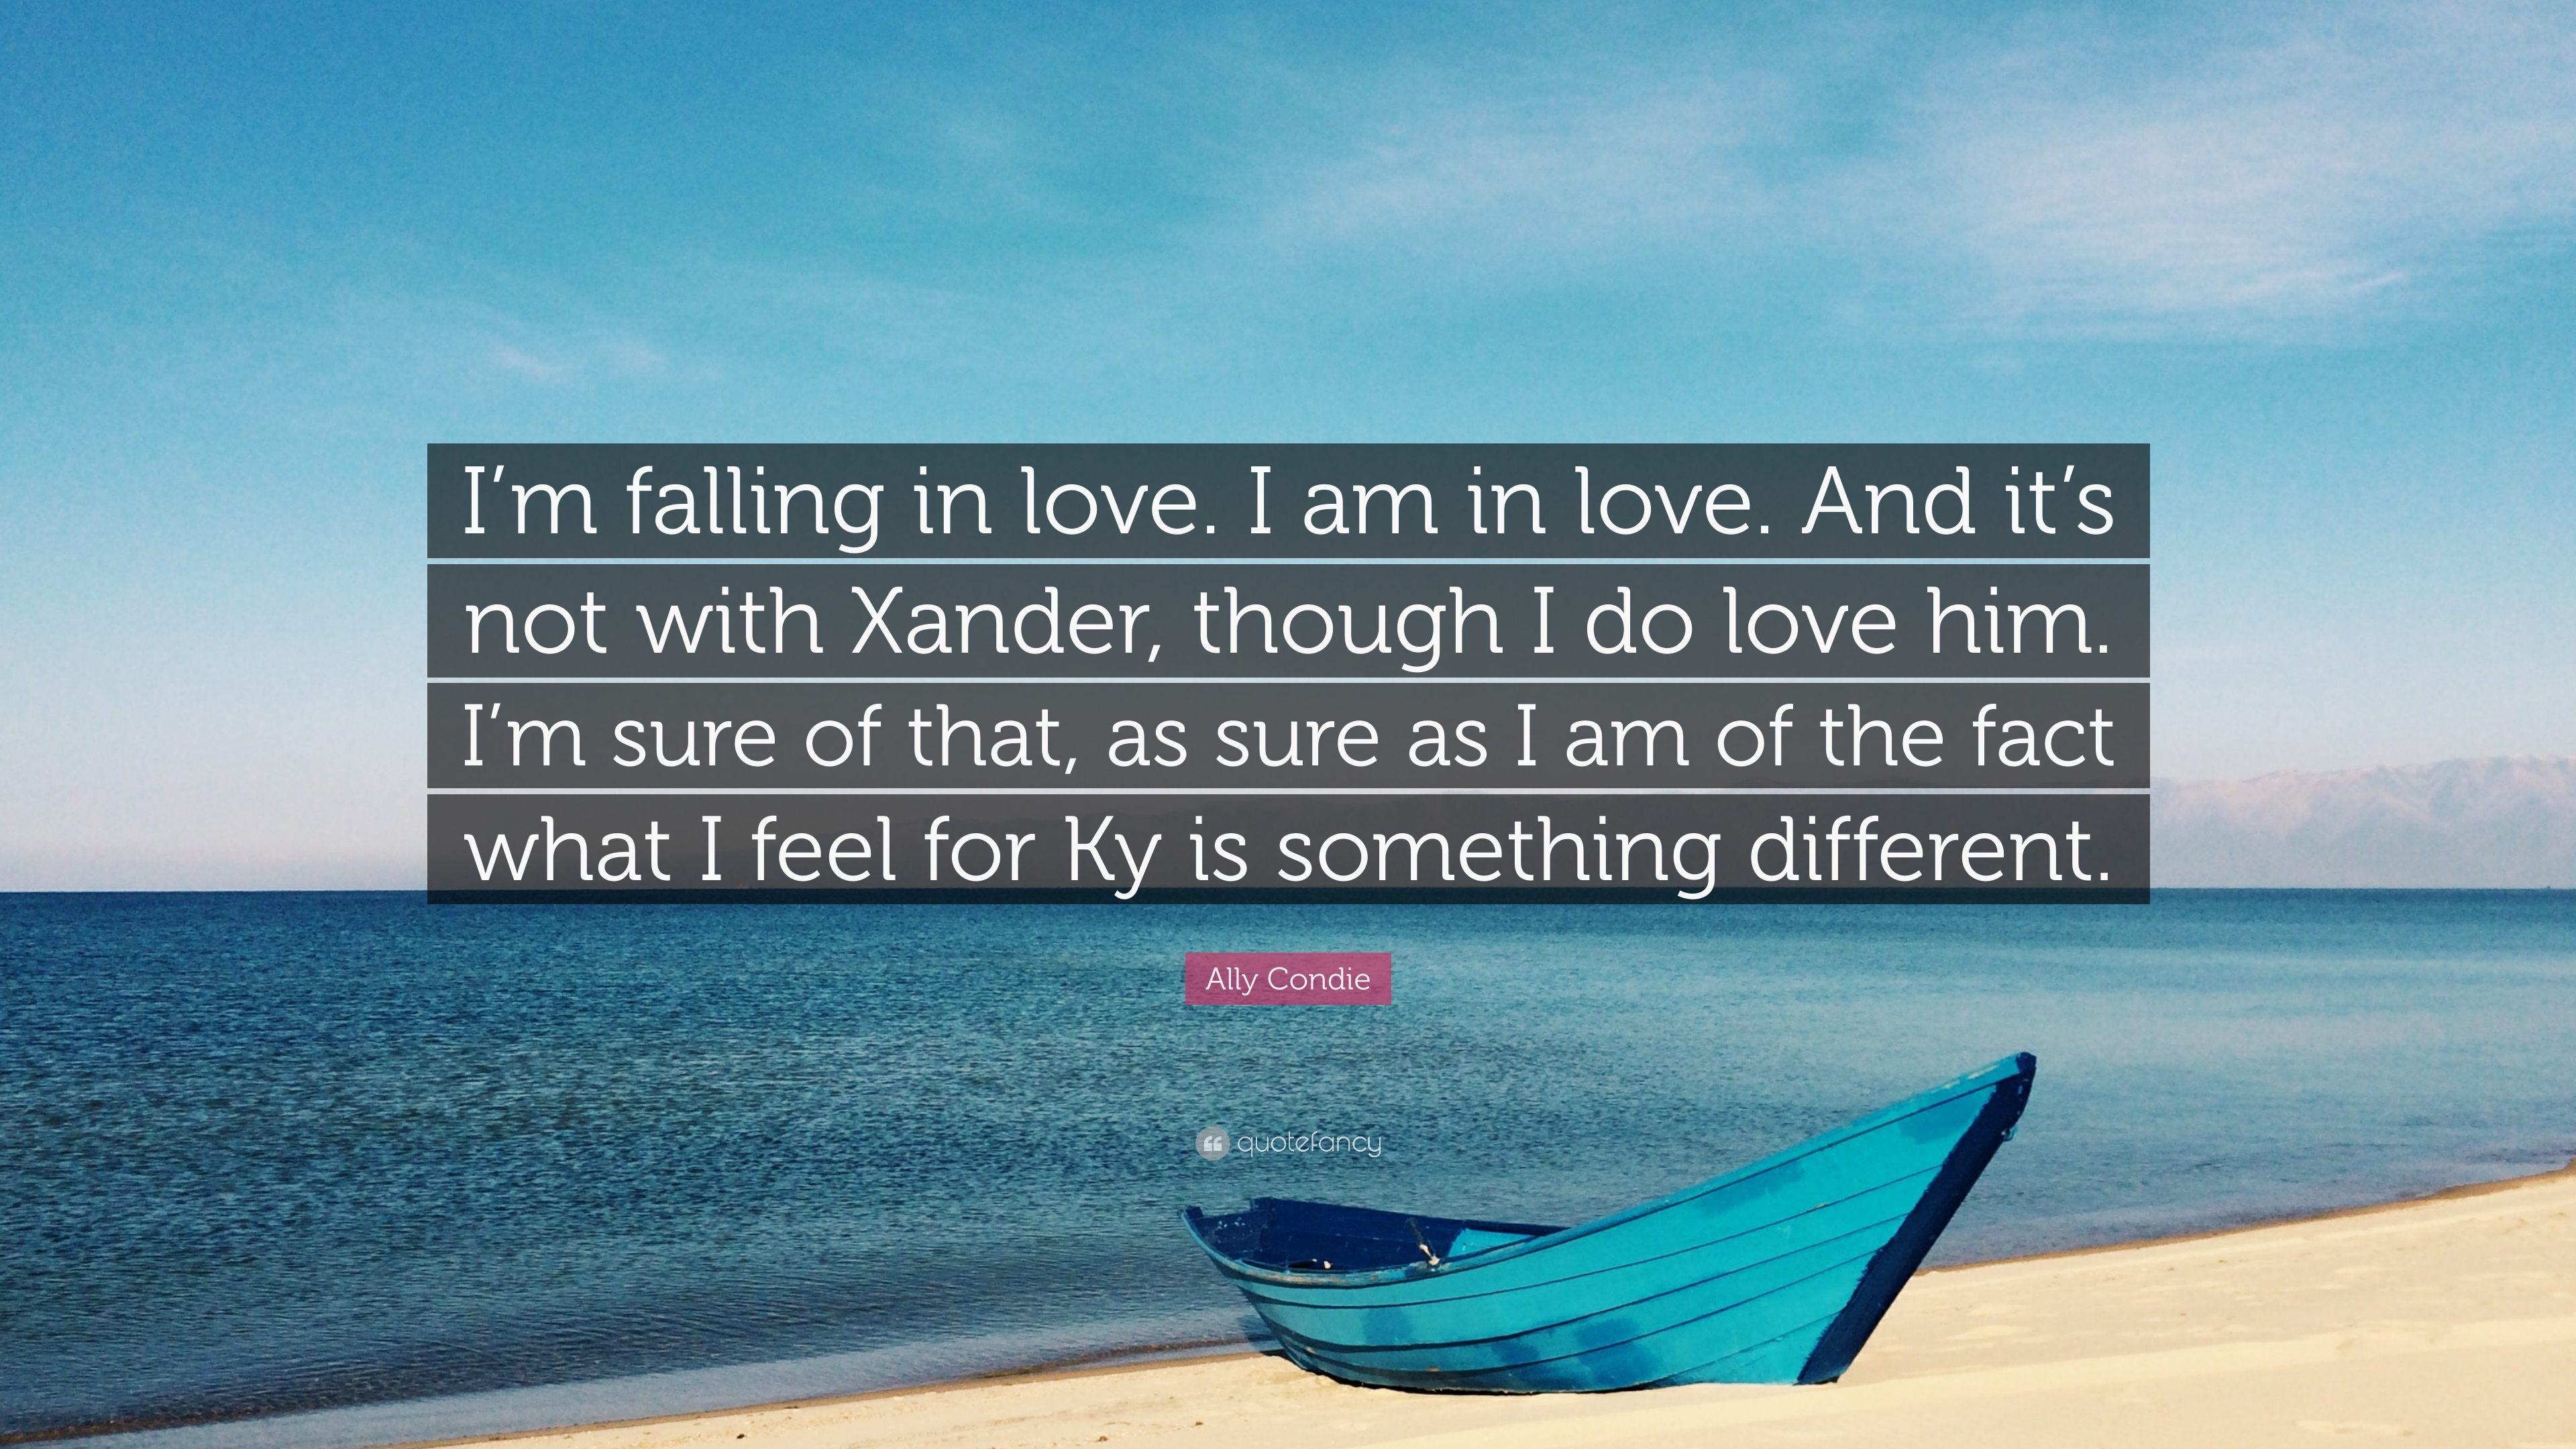 """Ally Condie Quote: """"I'm falling in love  I am in love  And"""